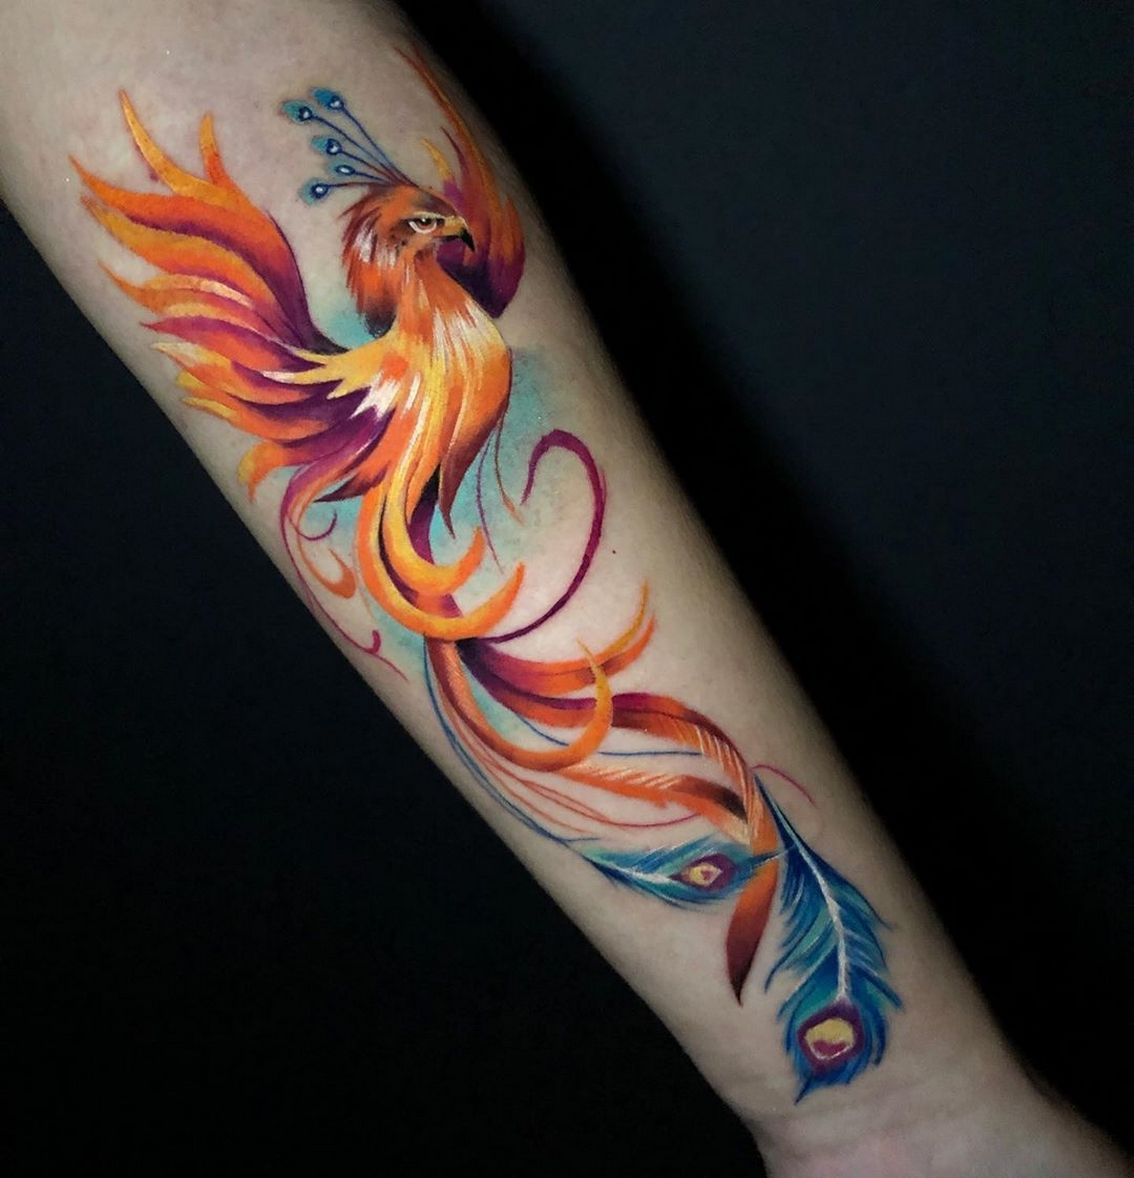 58 Ideas Phoenix Bird Tattoo Symbolic Beauty Best 58 Ideas Phoenix Bird Tattoo Symbolic Beauty In 2020 Phoenix Bird Tattoos Phoenix Tattoo Phoenix Tattoo Design